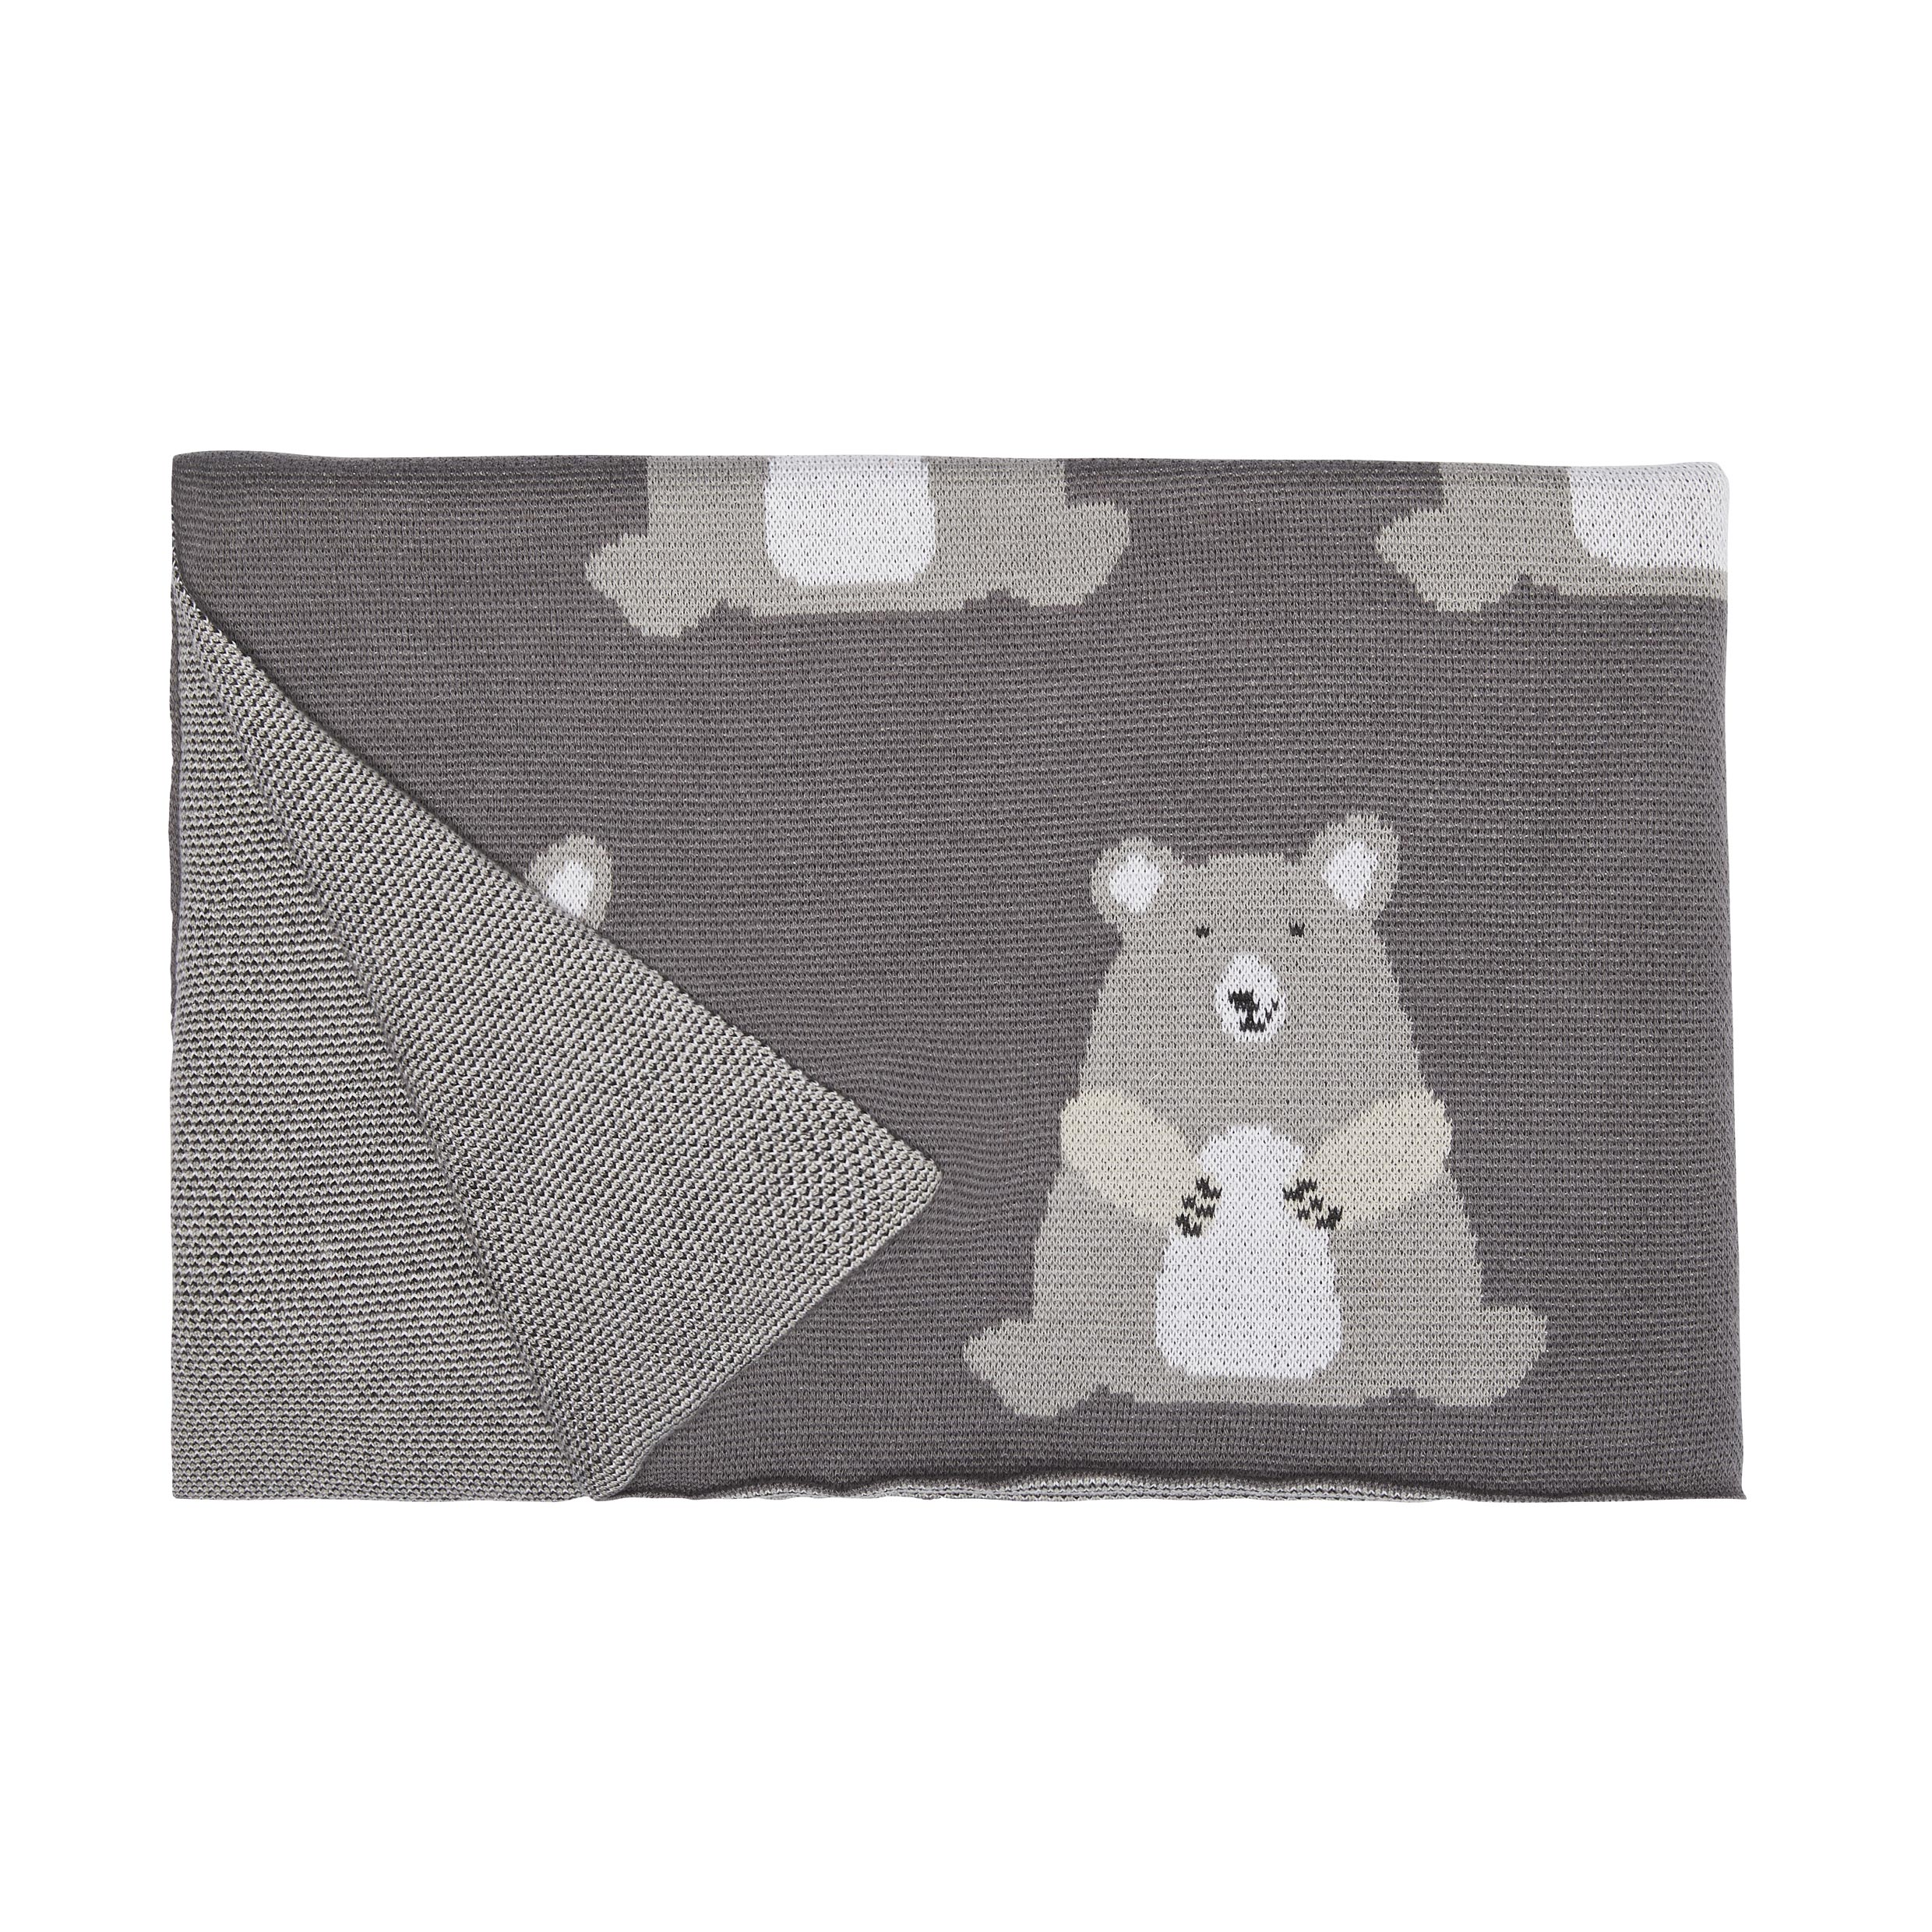 Billede af Covers & Co plaid - Counting Star